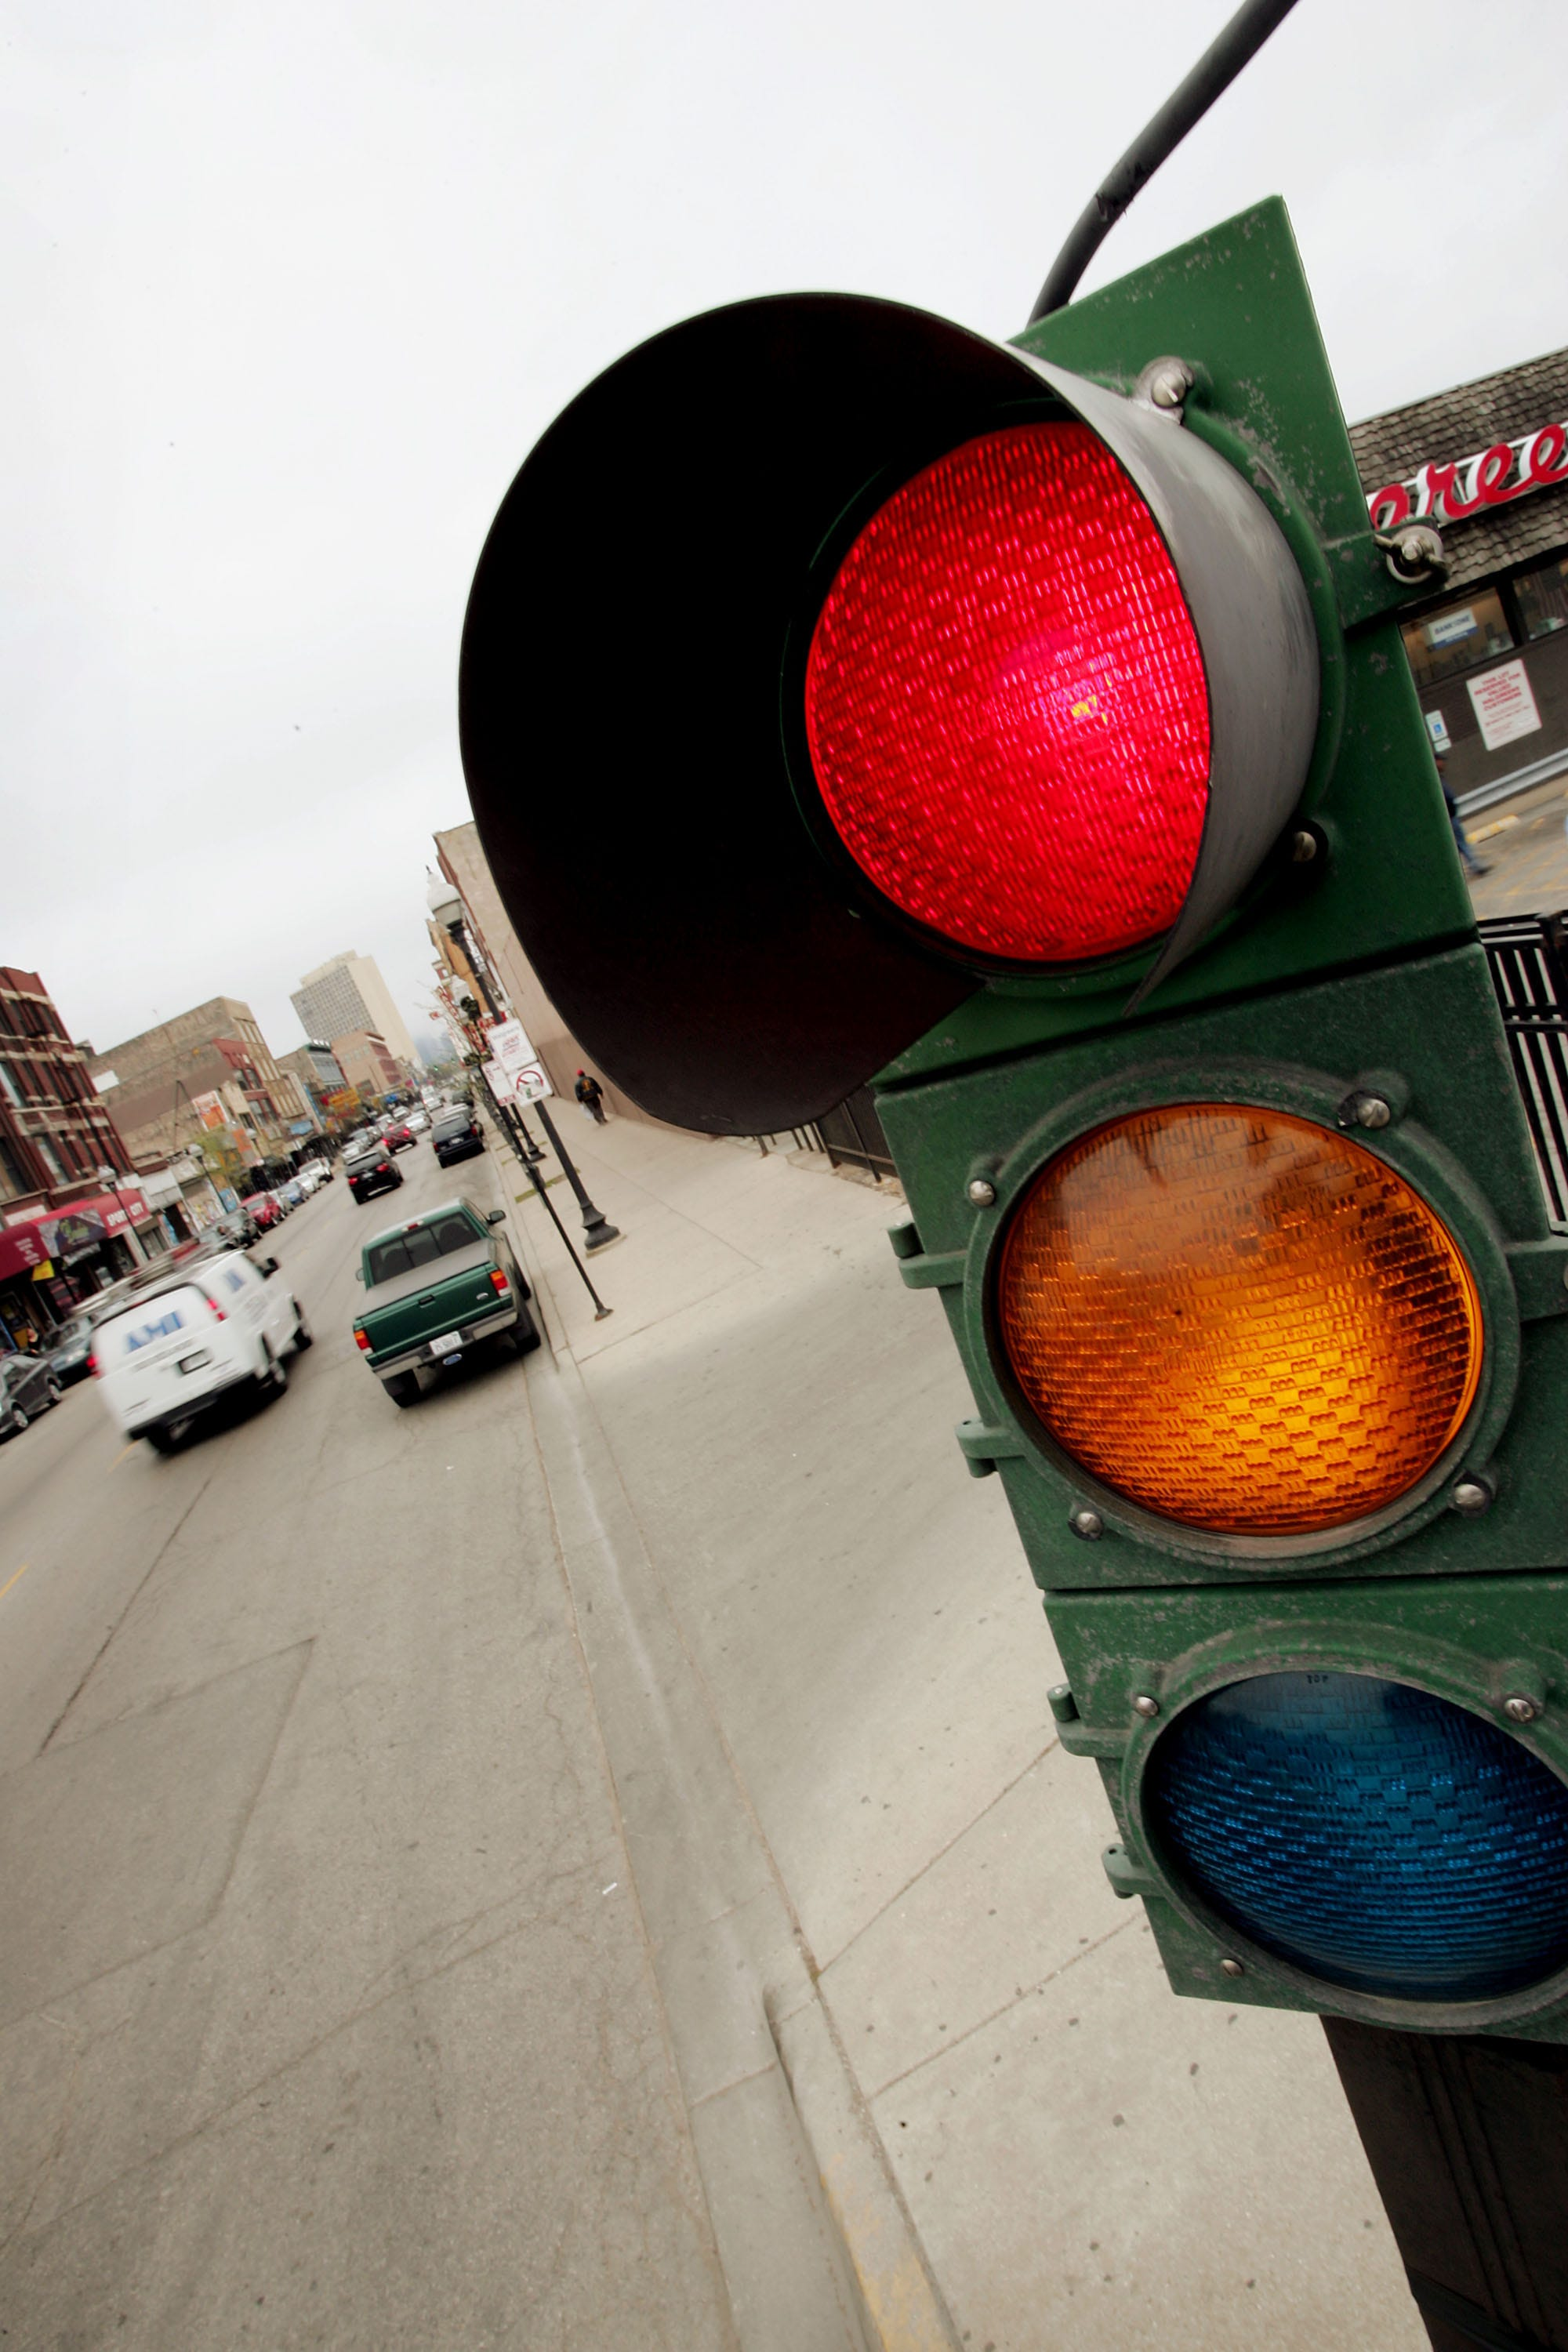 Traffic deaths due to red-light running hit 10-year high, AAA finds